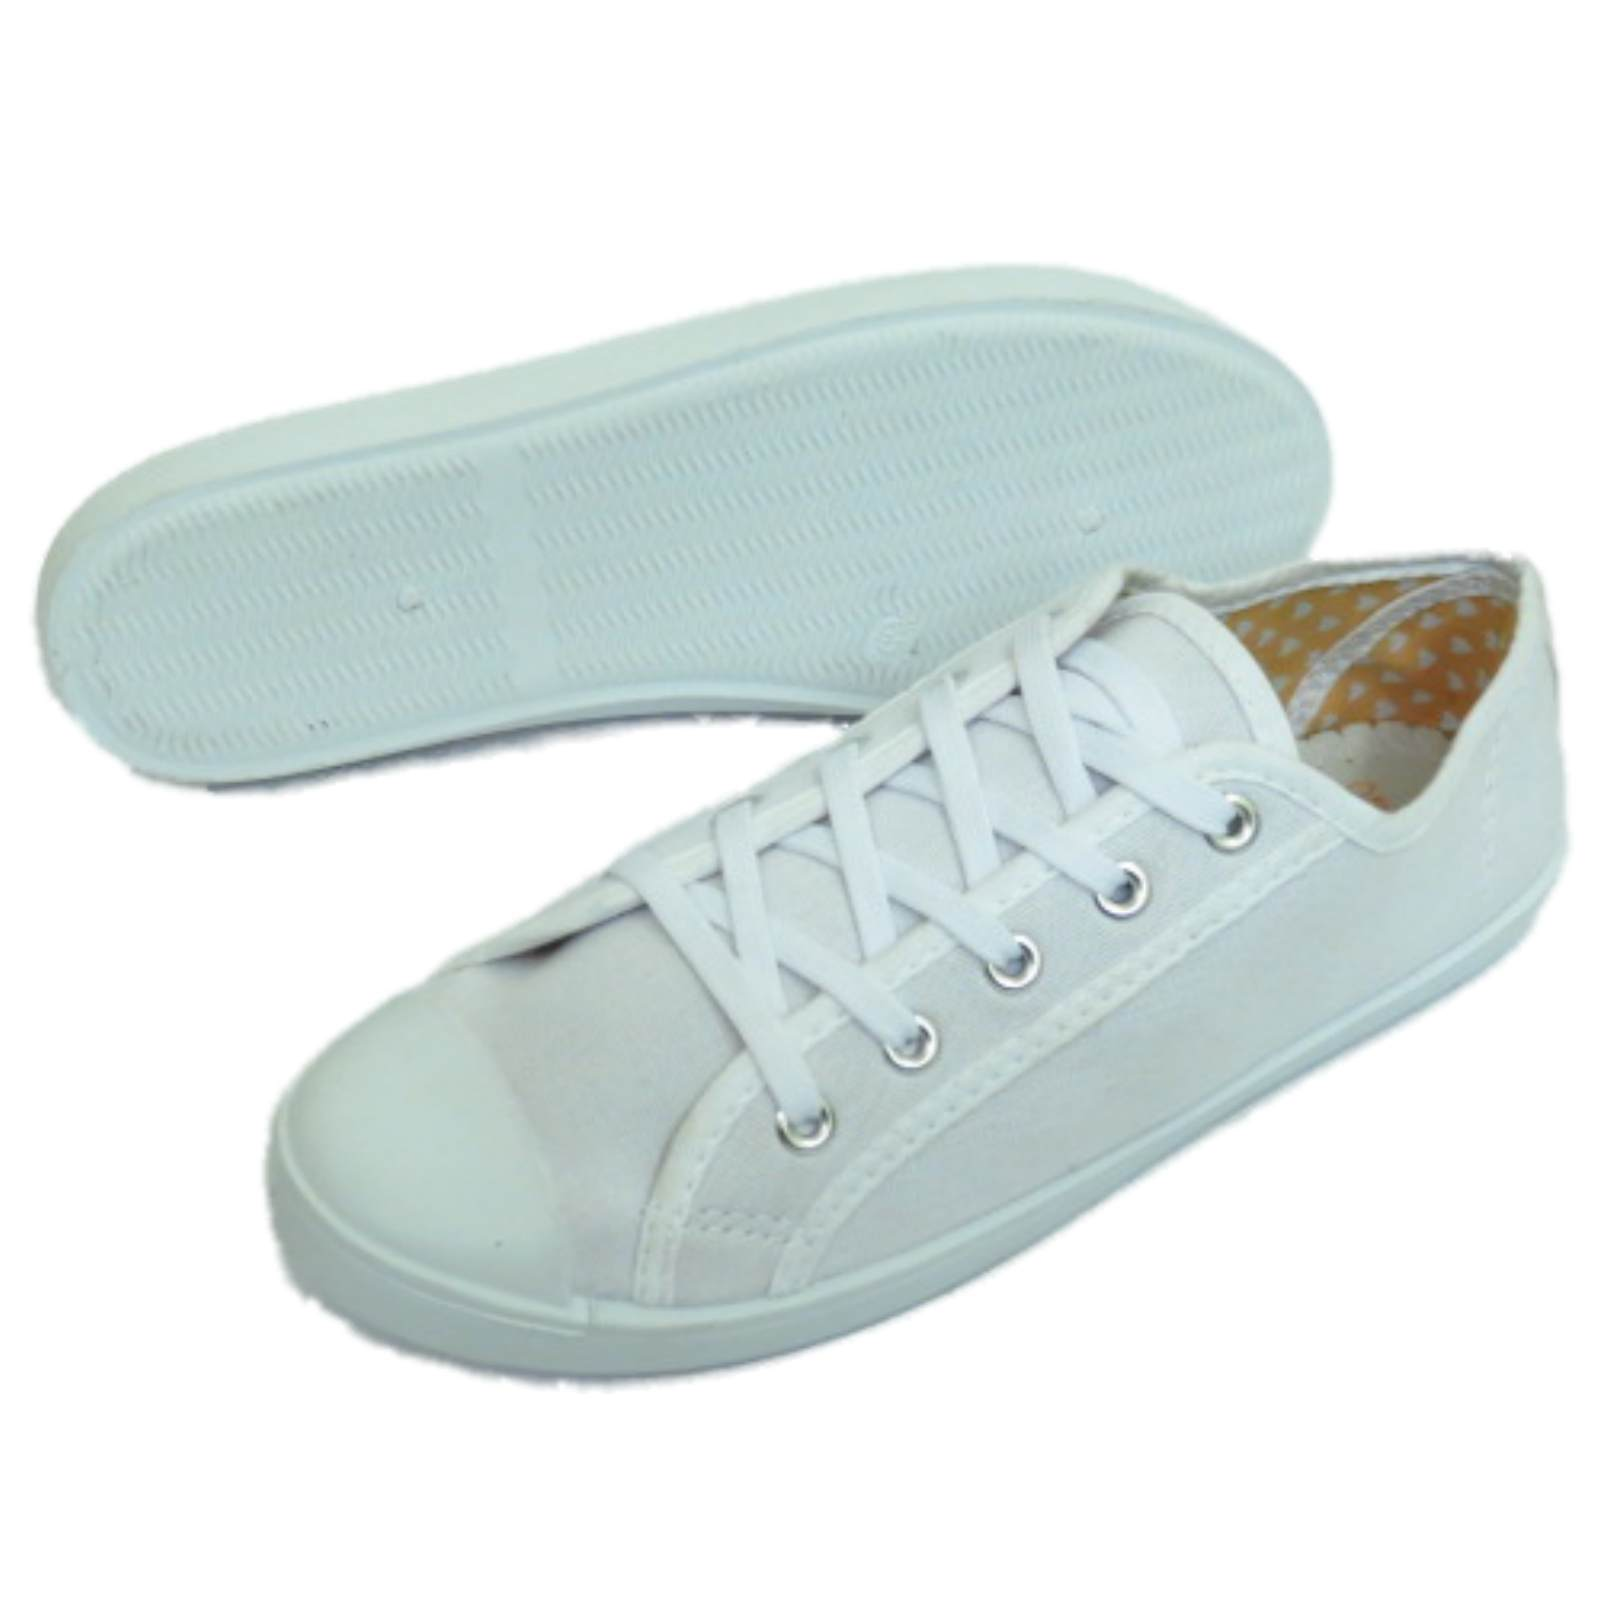 LADIES-WHITE-CANVAS-FLAT-LACE-UP-TRAINER-PLIMSOLL-PUMPS-CASUAL-SHOES-SIZES-3-9 thumbnail 7